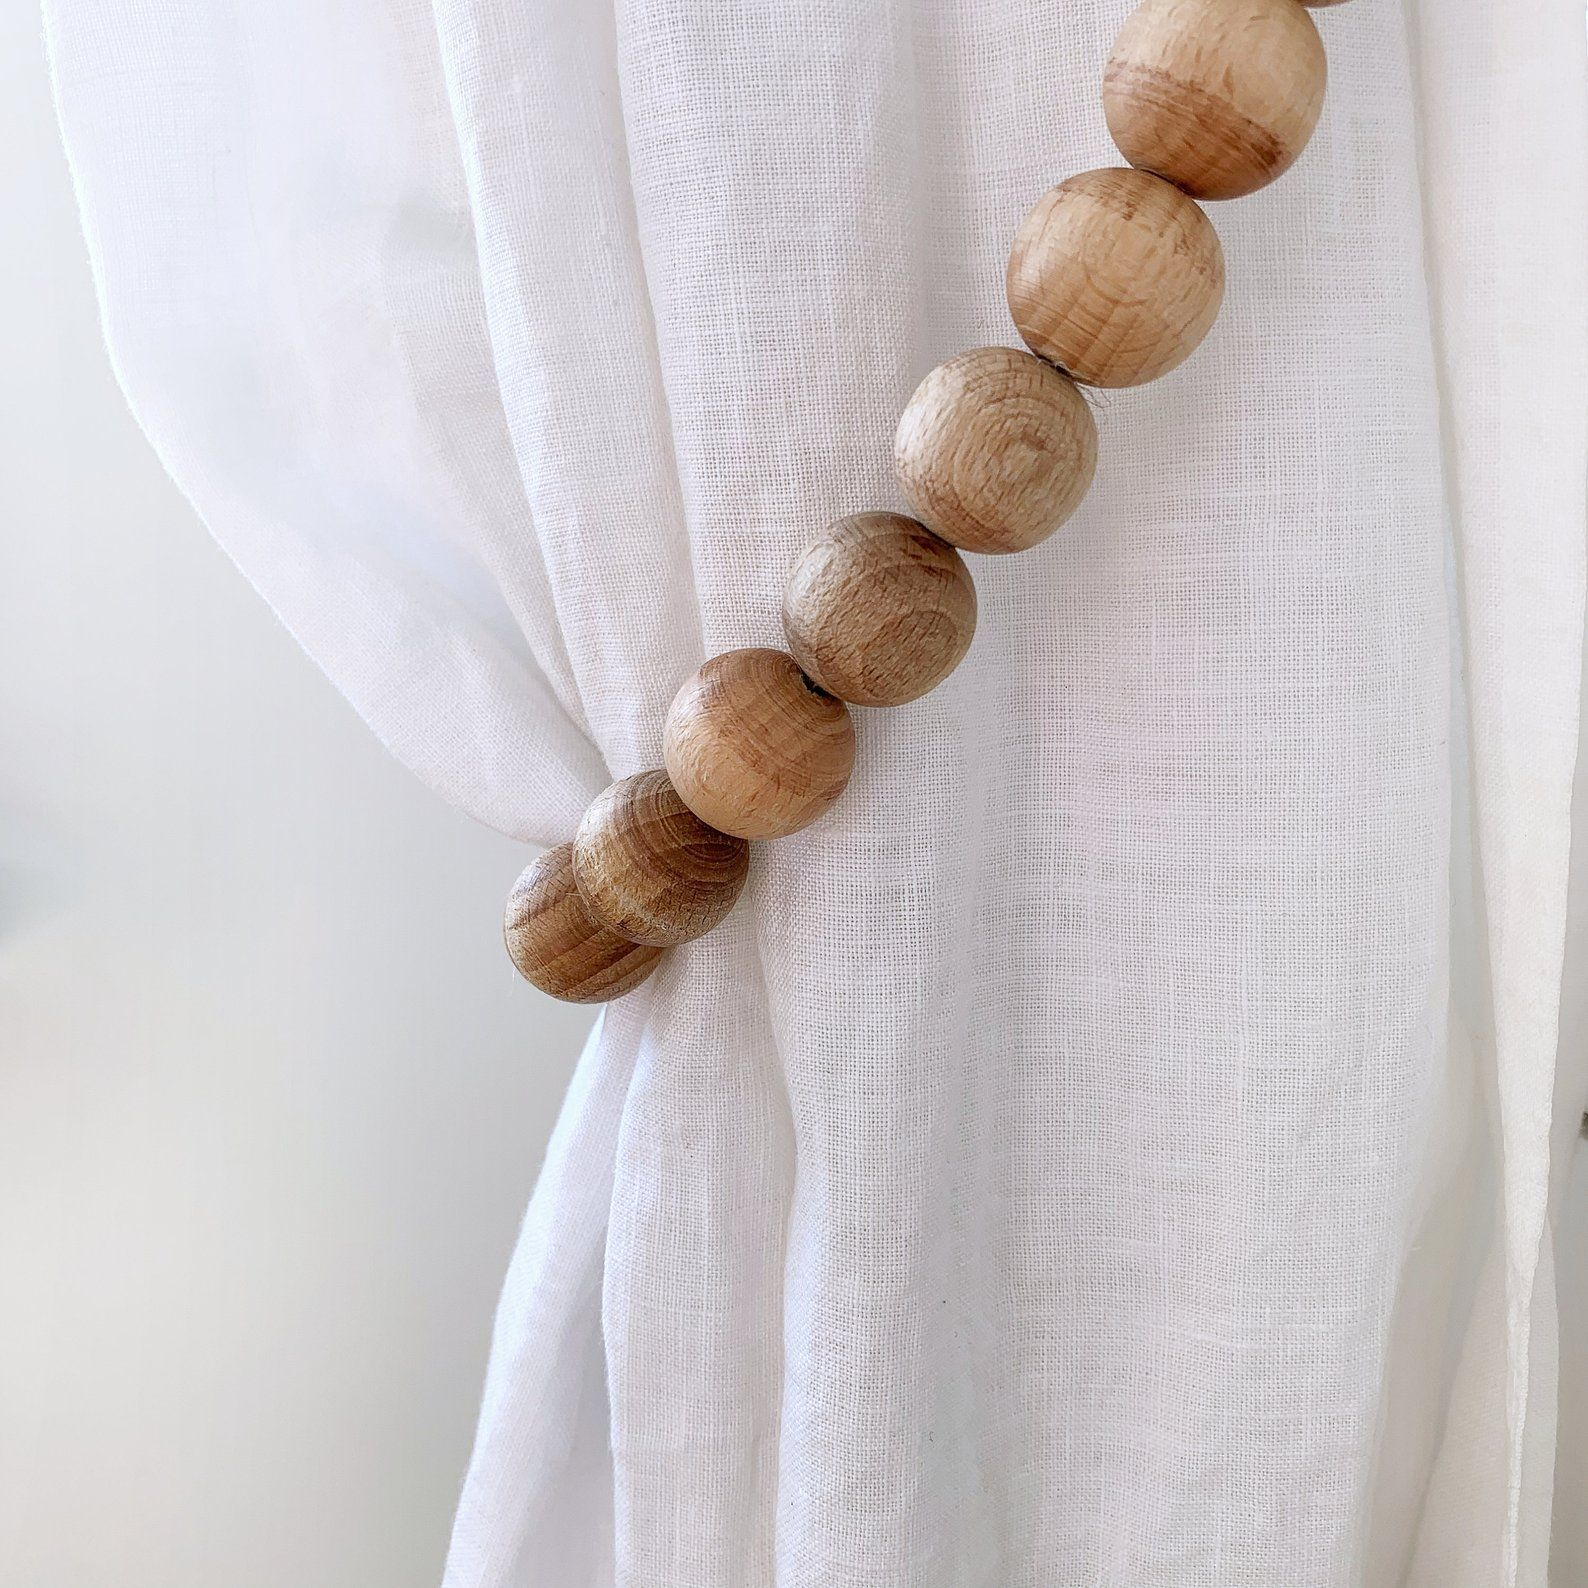 2 Modern Farmhouse Beads For Curtain Ties Natural Wooden Bead